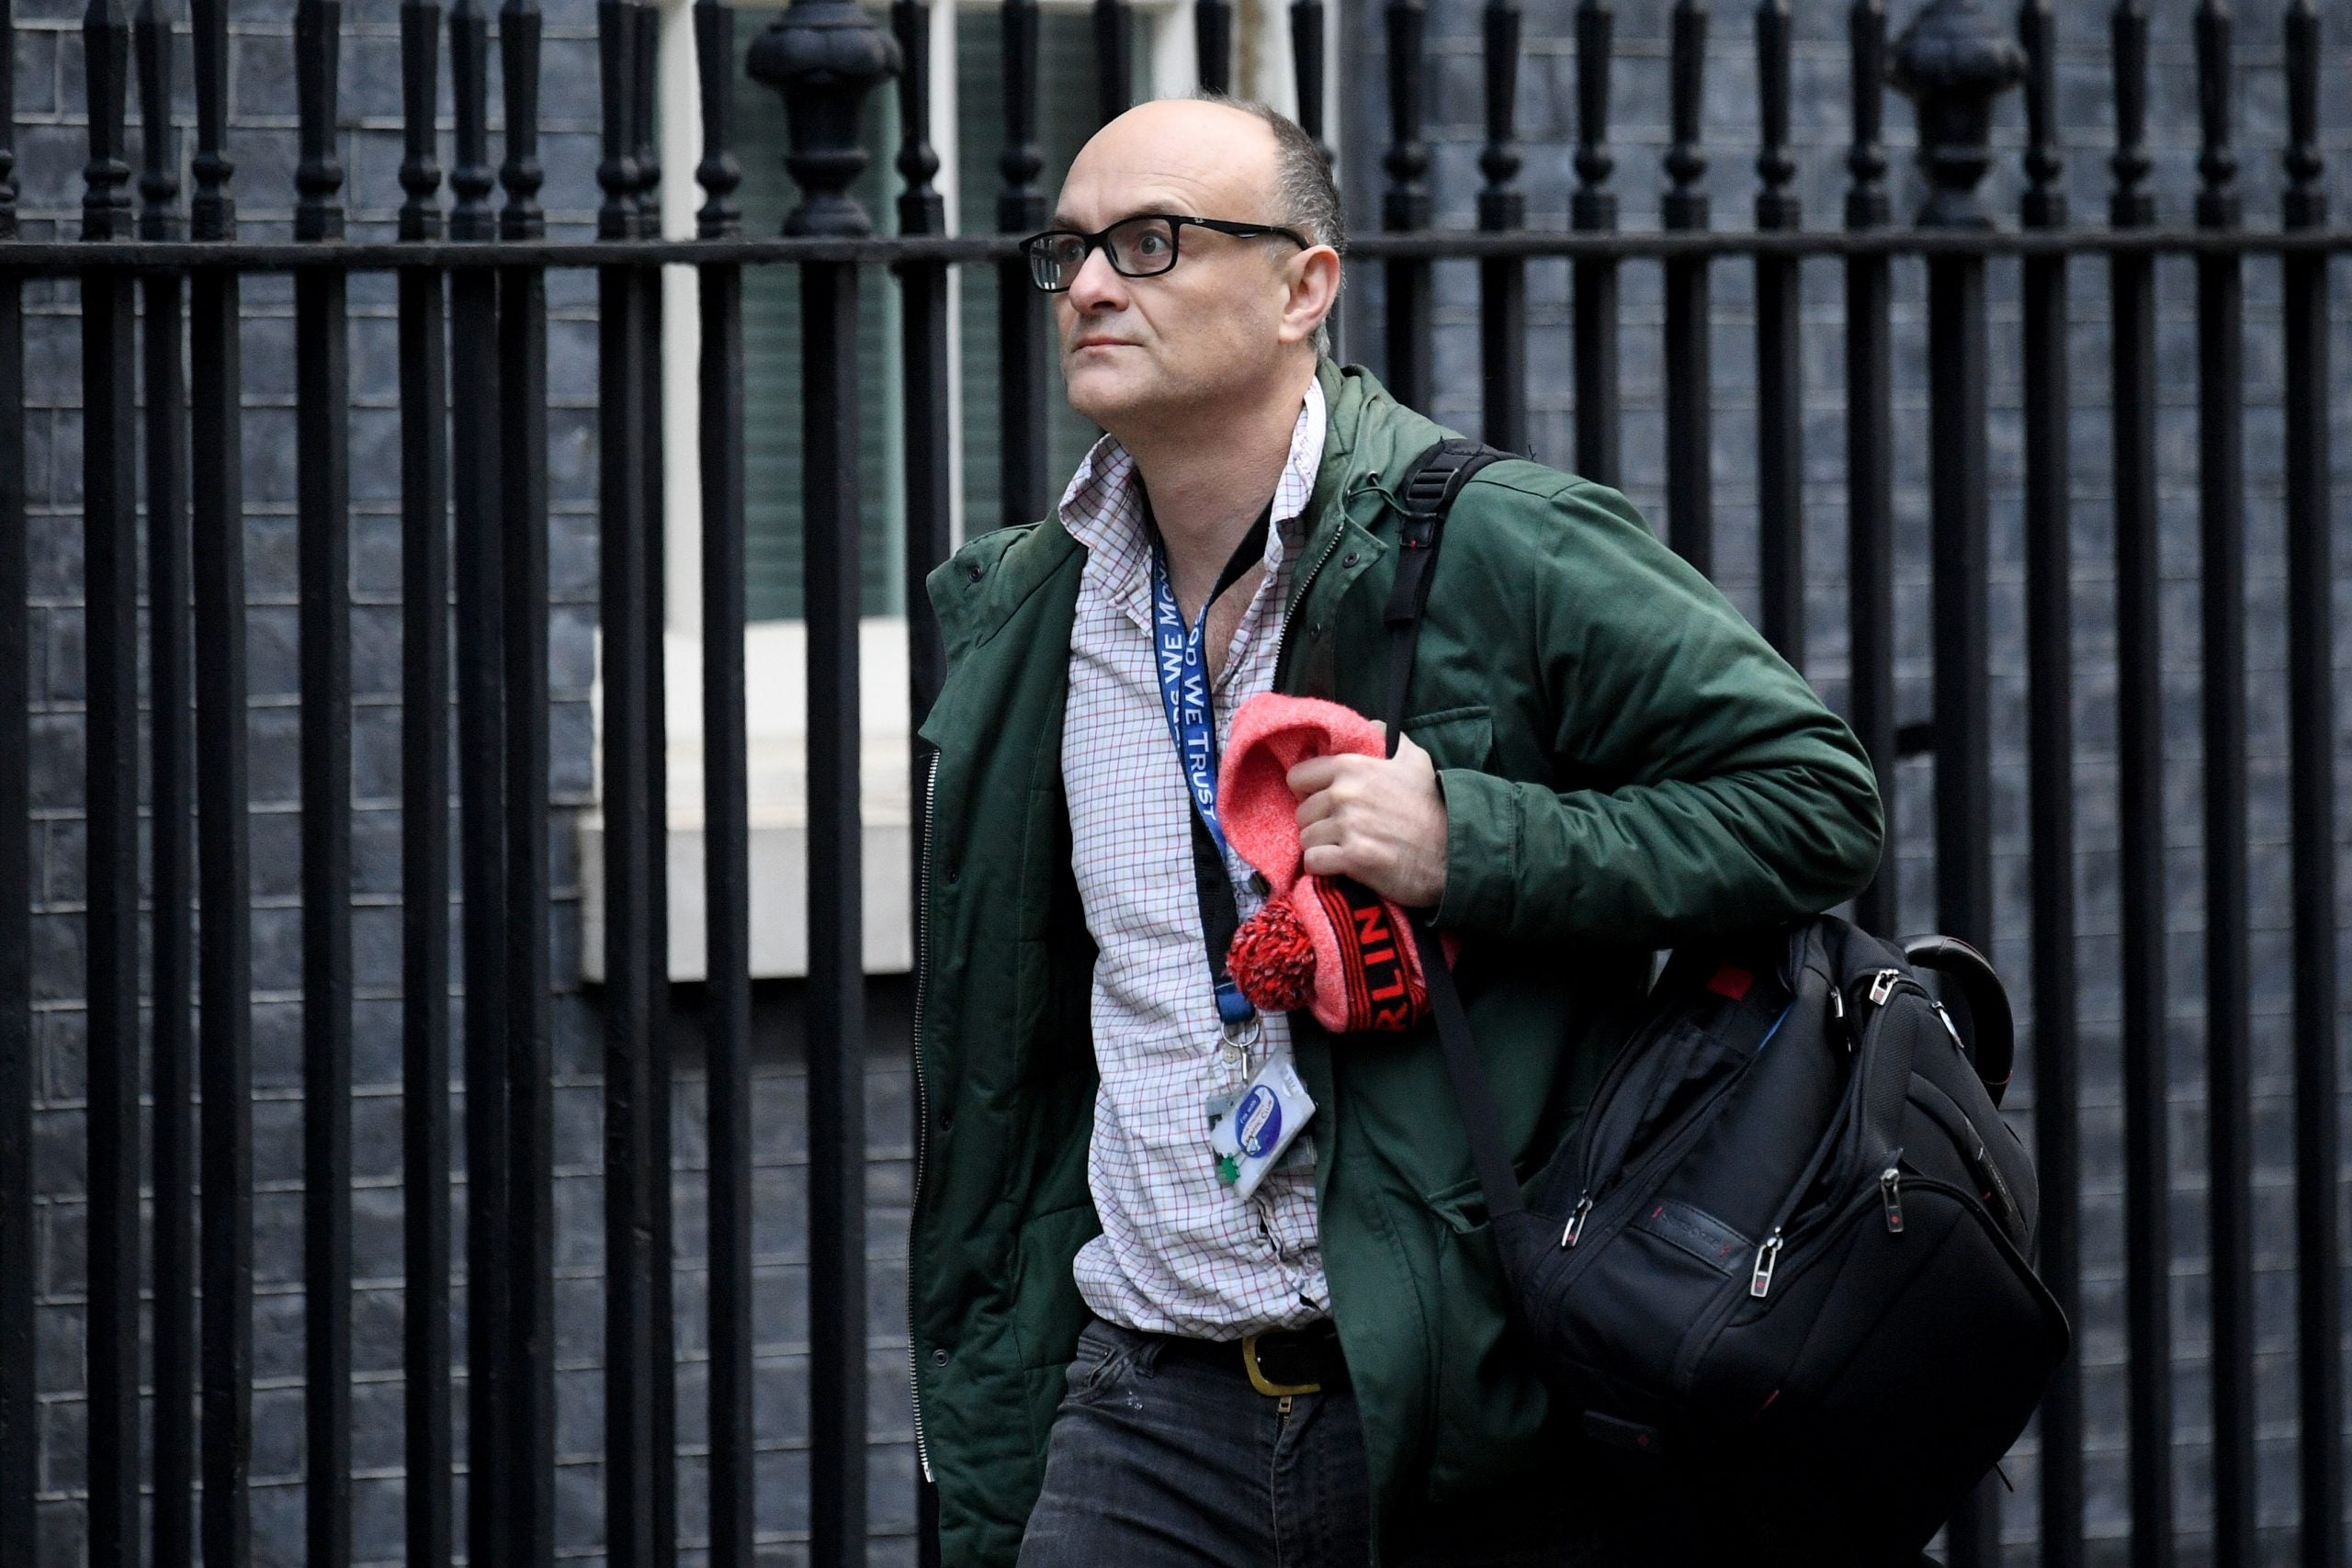 Why is No 10 so sure Dominic Cummings is the source of the leaks?